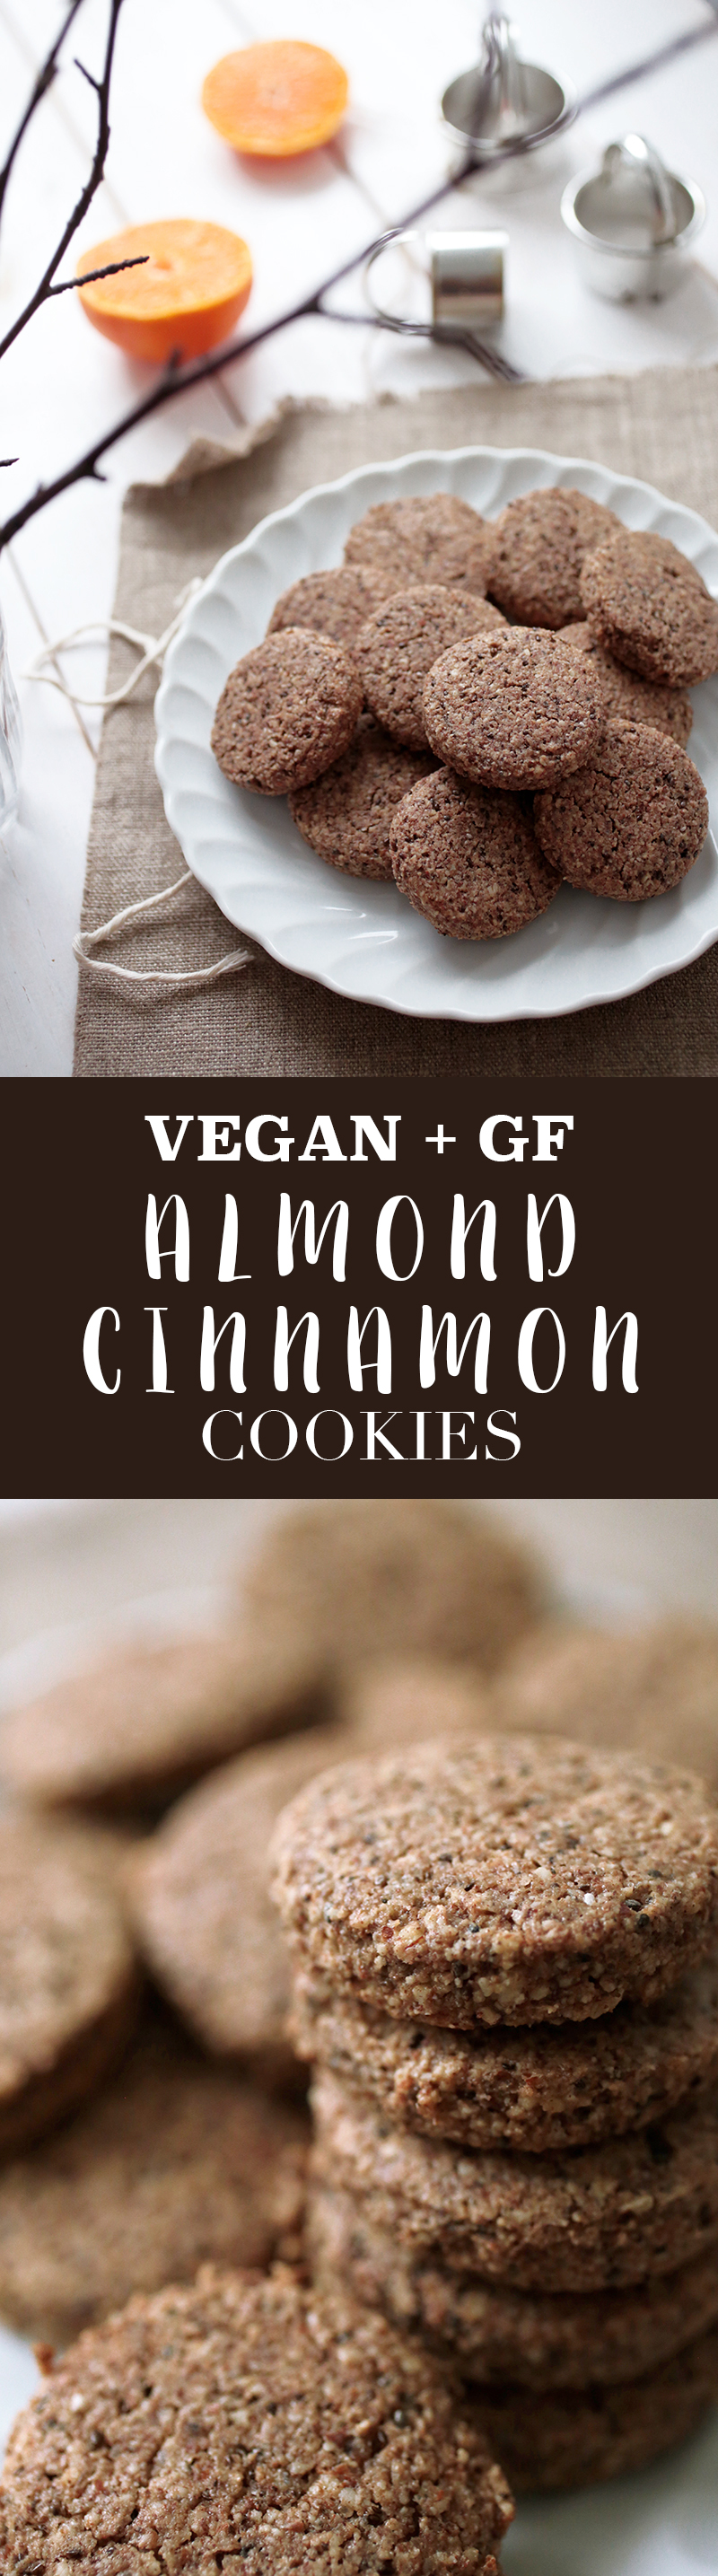 Almond and Cinnamon Cookies